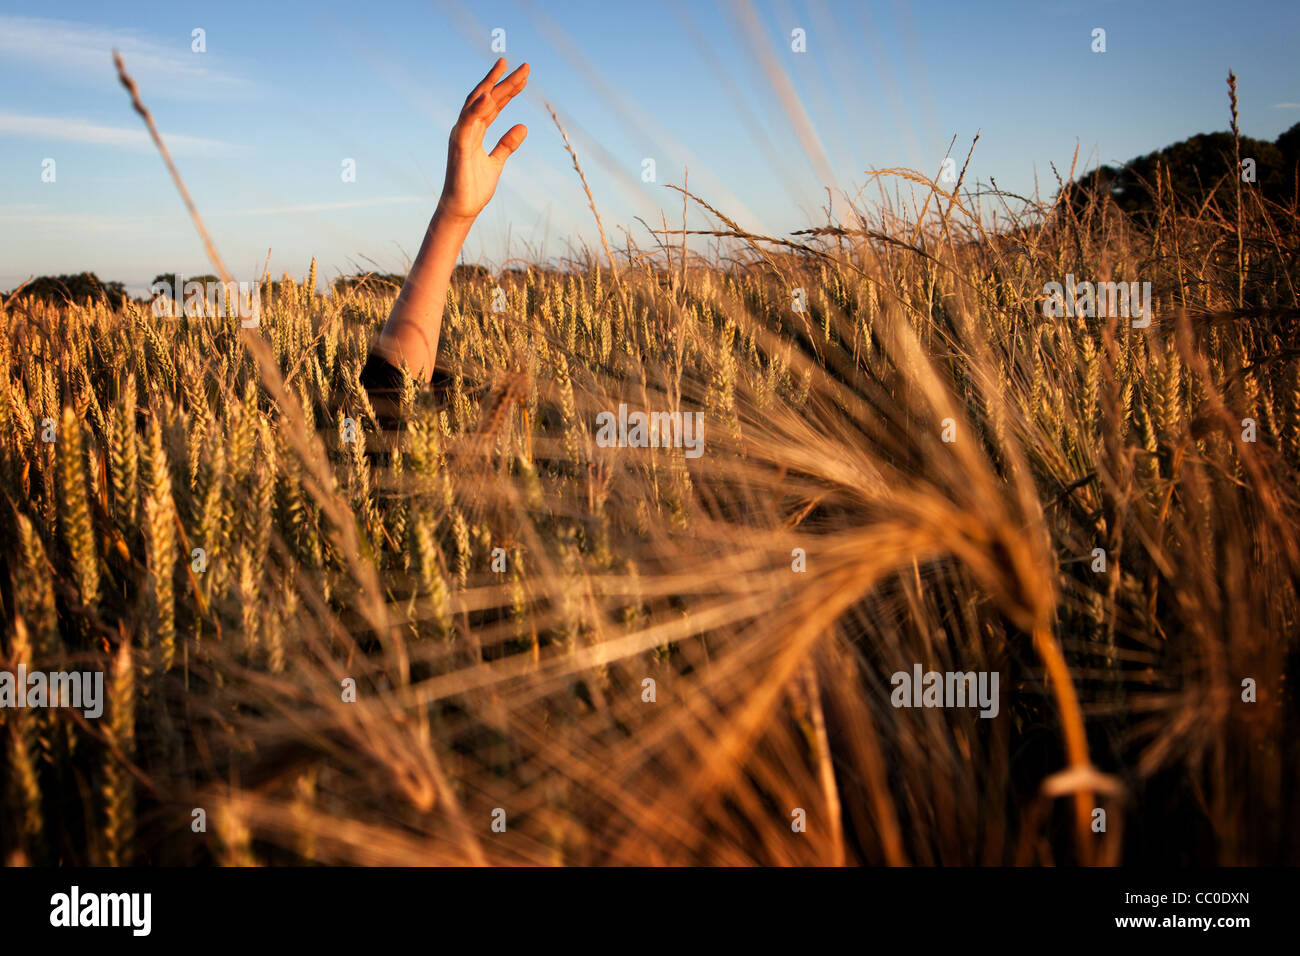 CHILD'S HAND RISING OUT OF A WHEAT FIELD, FRANCE - Stock Image